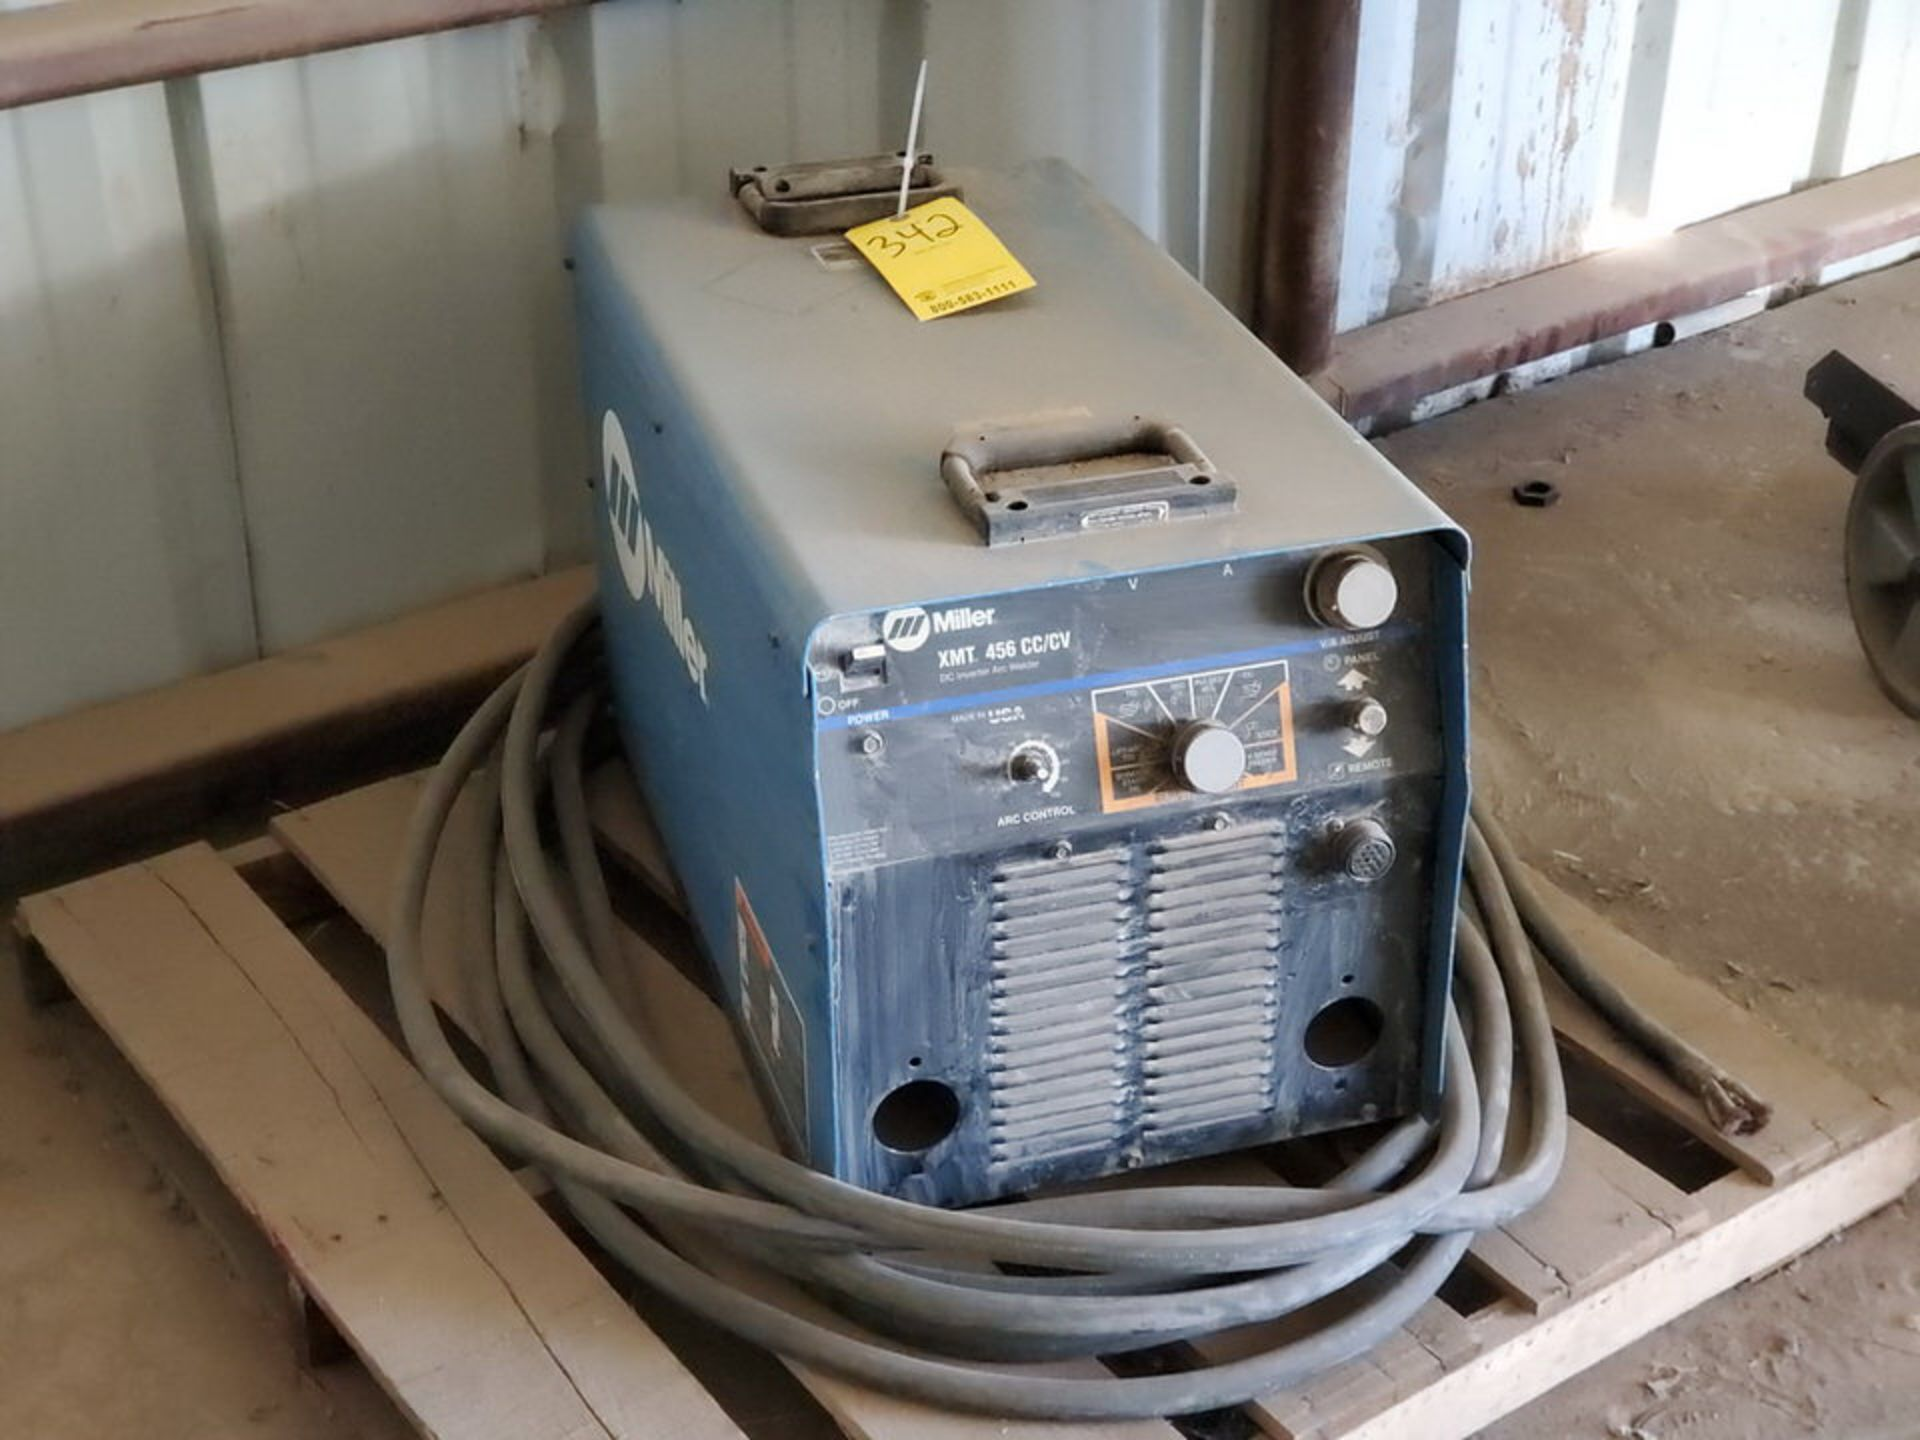 Miller XMT 456 Multiprocessing Welder 230/460V, 50.8/27.8A, 3PH, 60HZ - Image 2 of 5